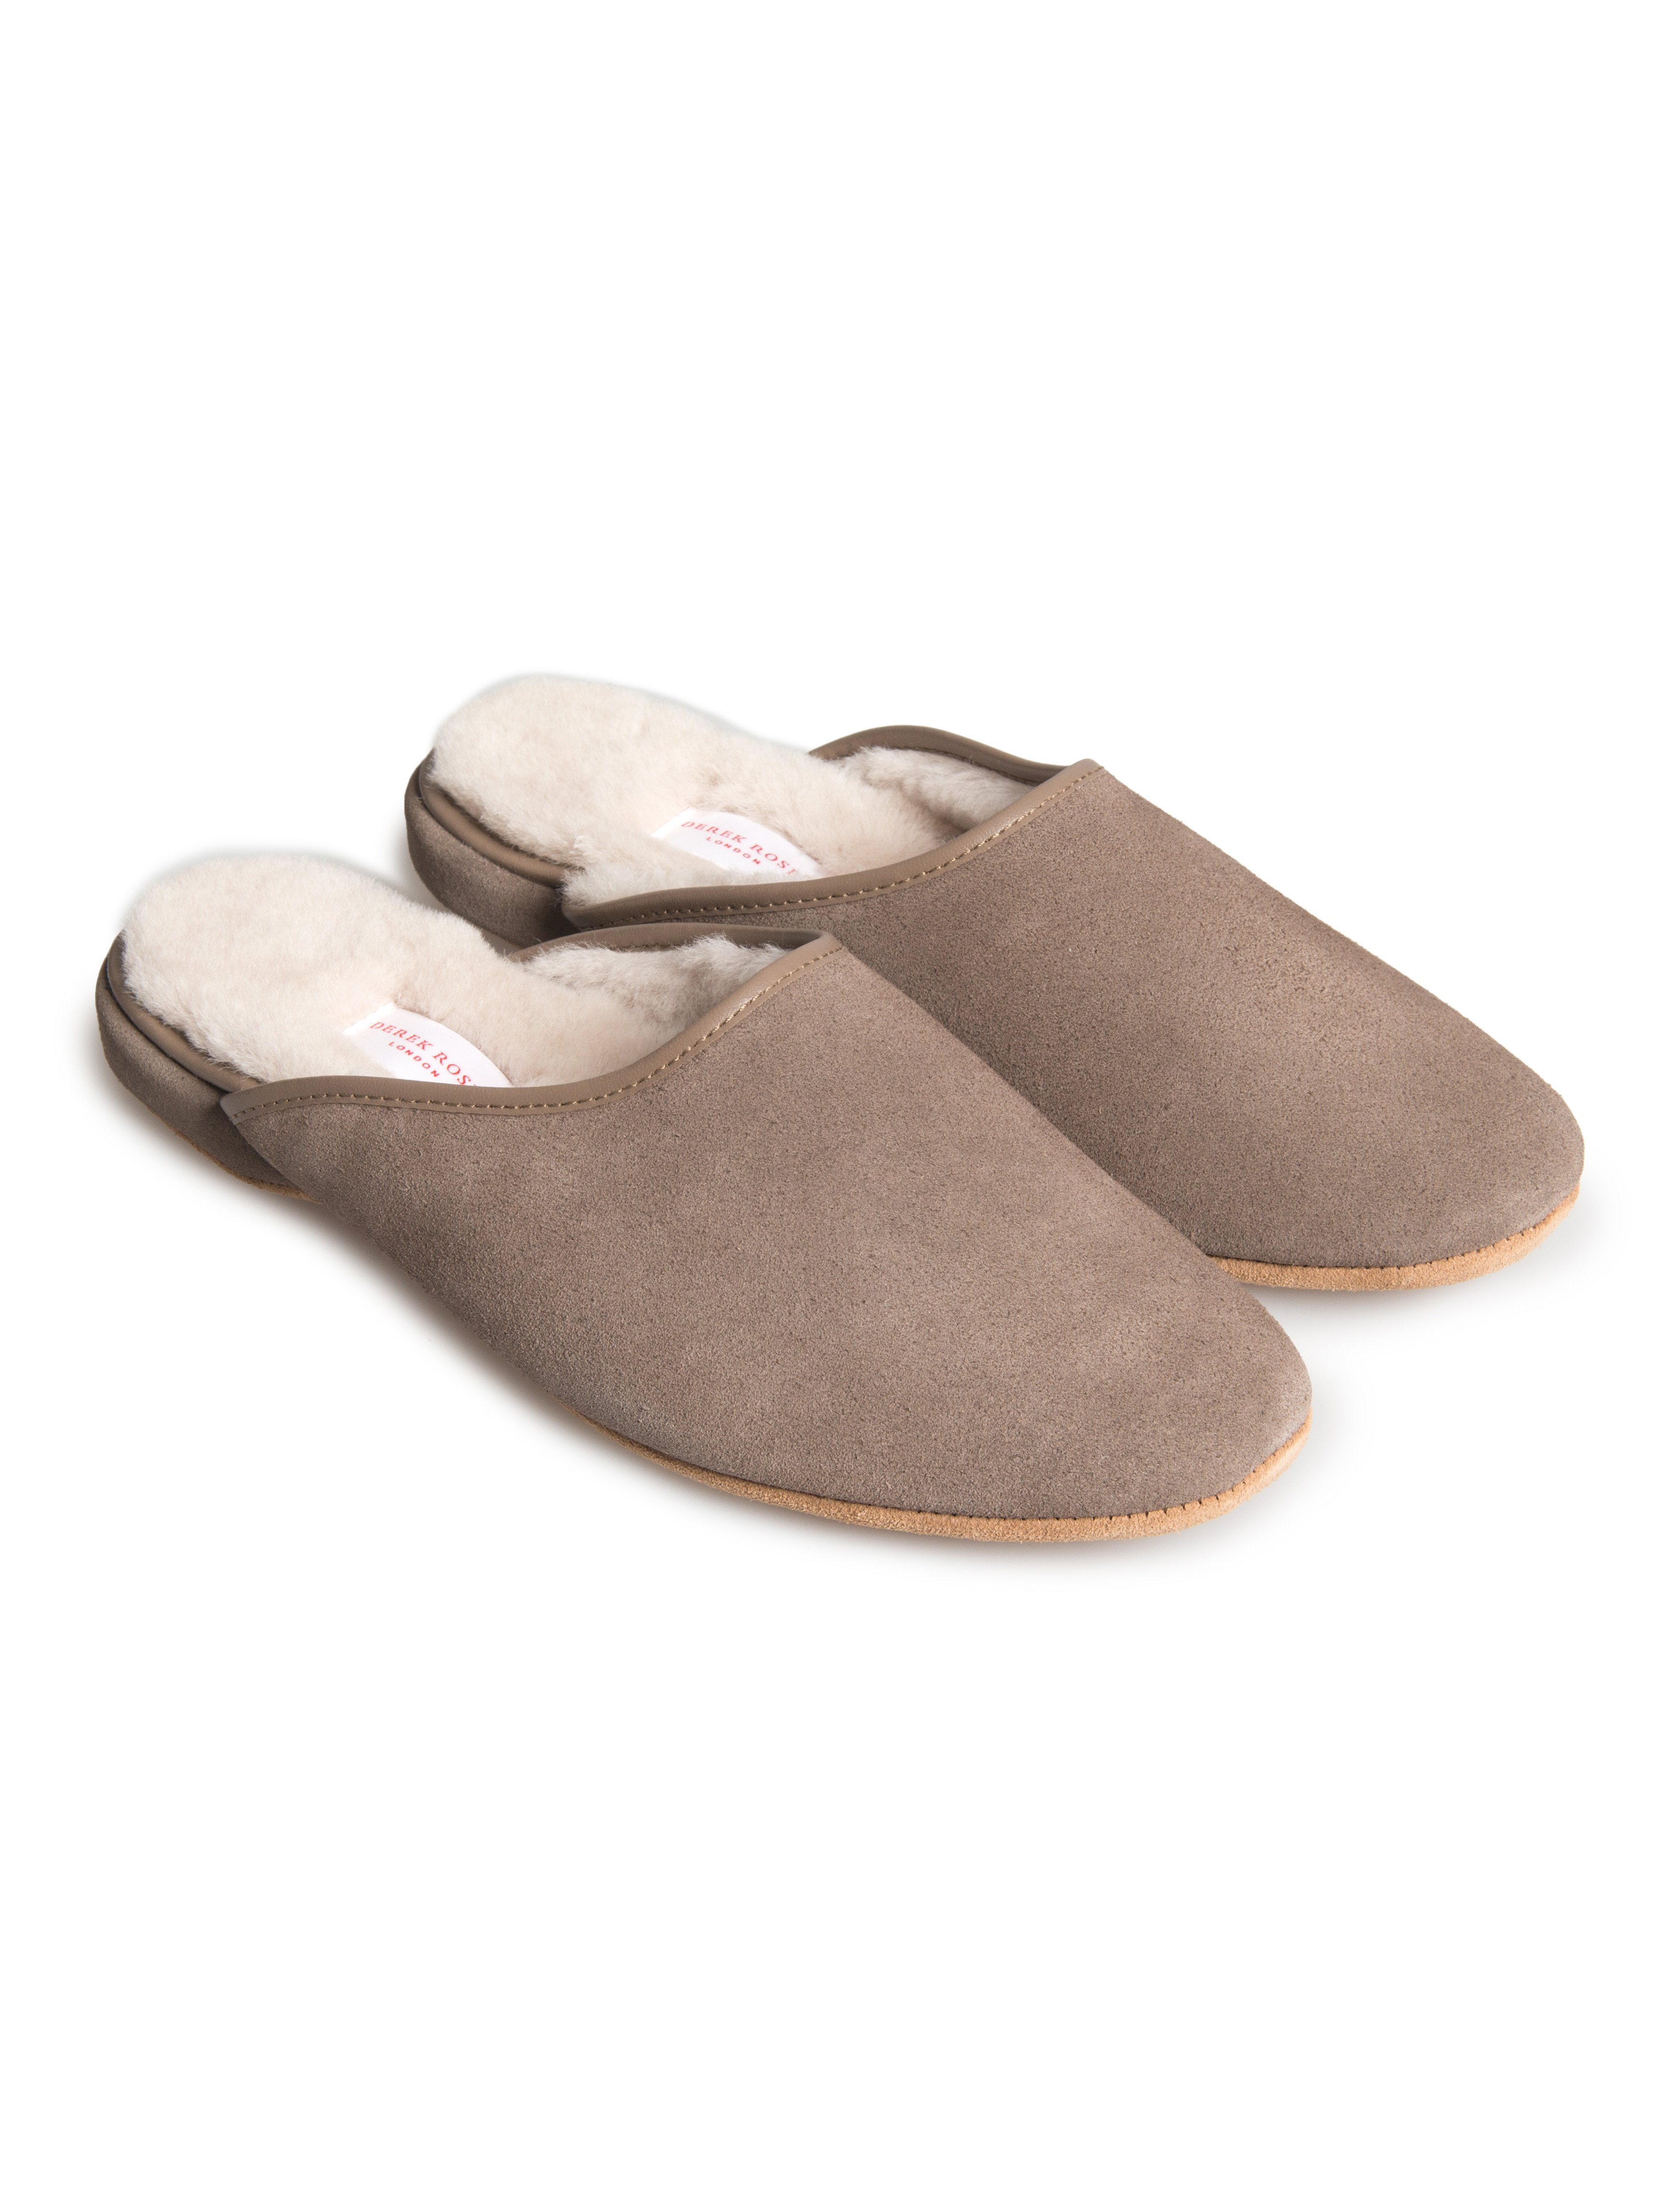 Men's Open-Back Slipper Douglas Sheepskin Beige